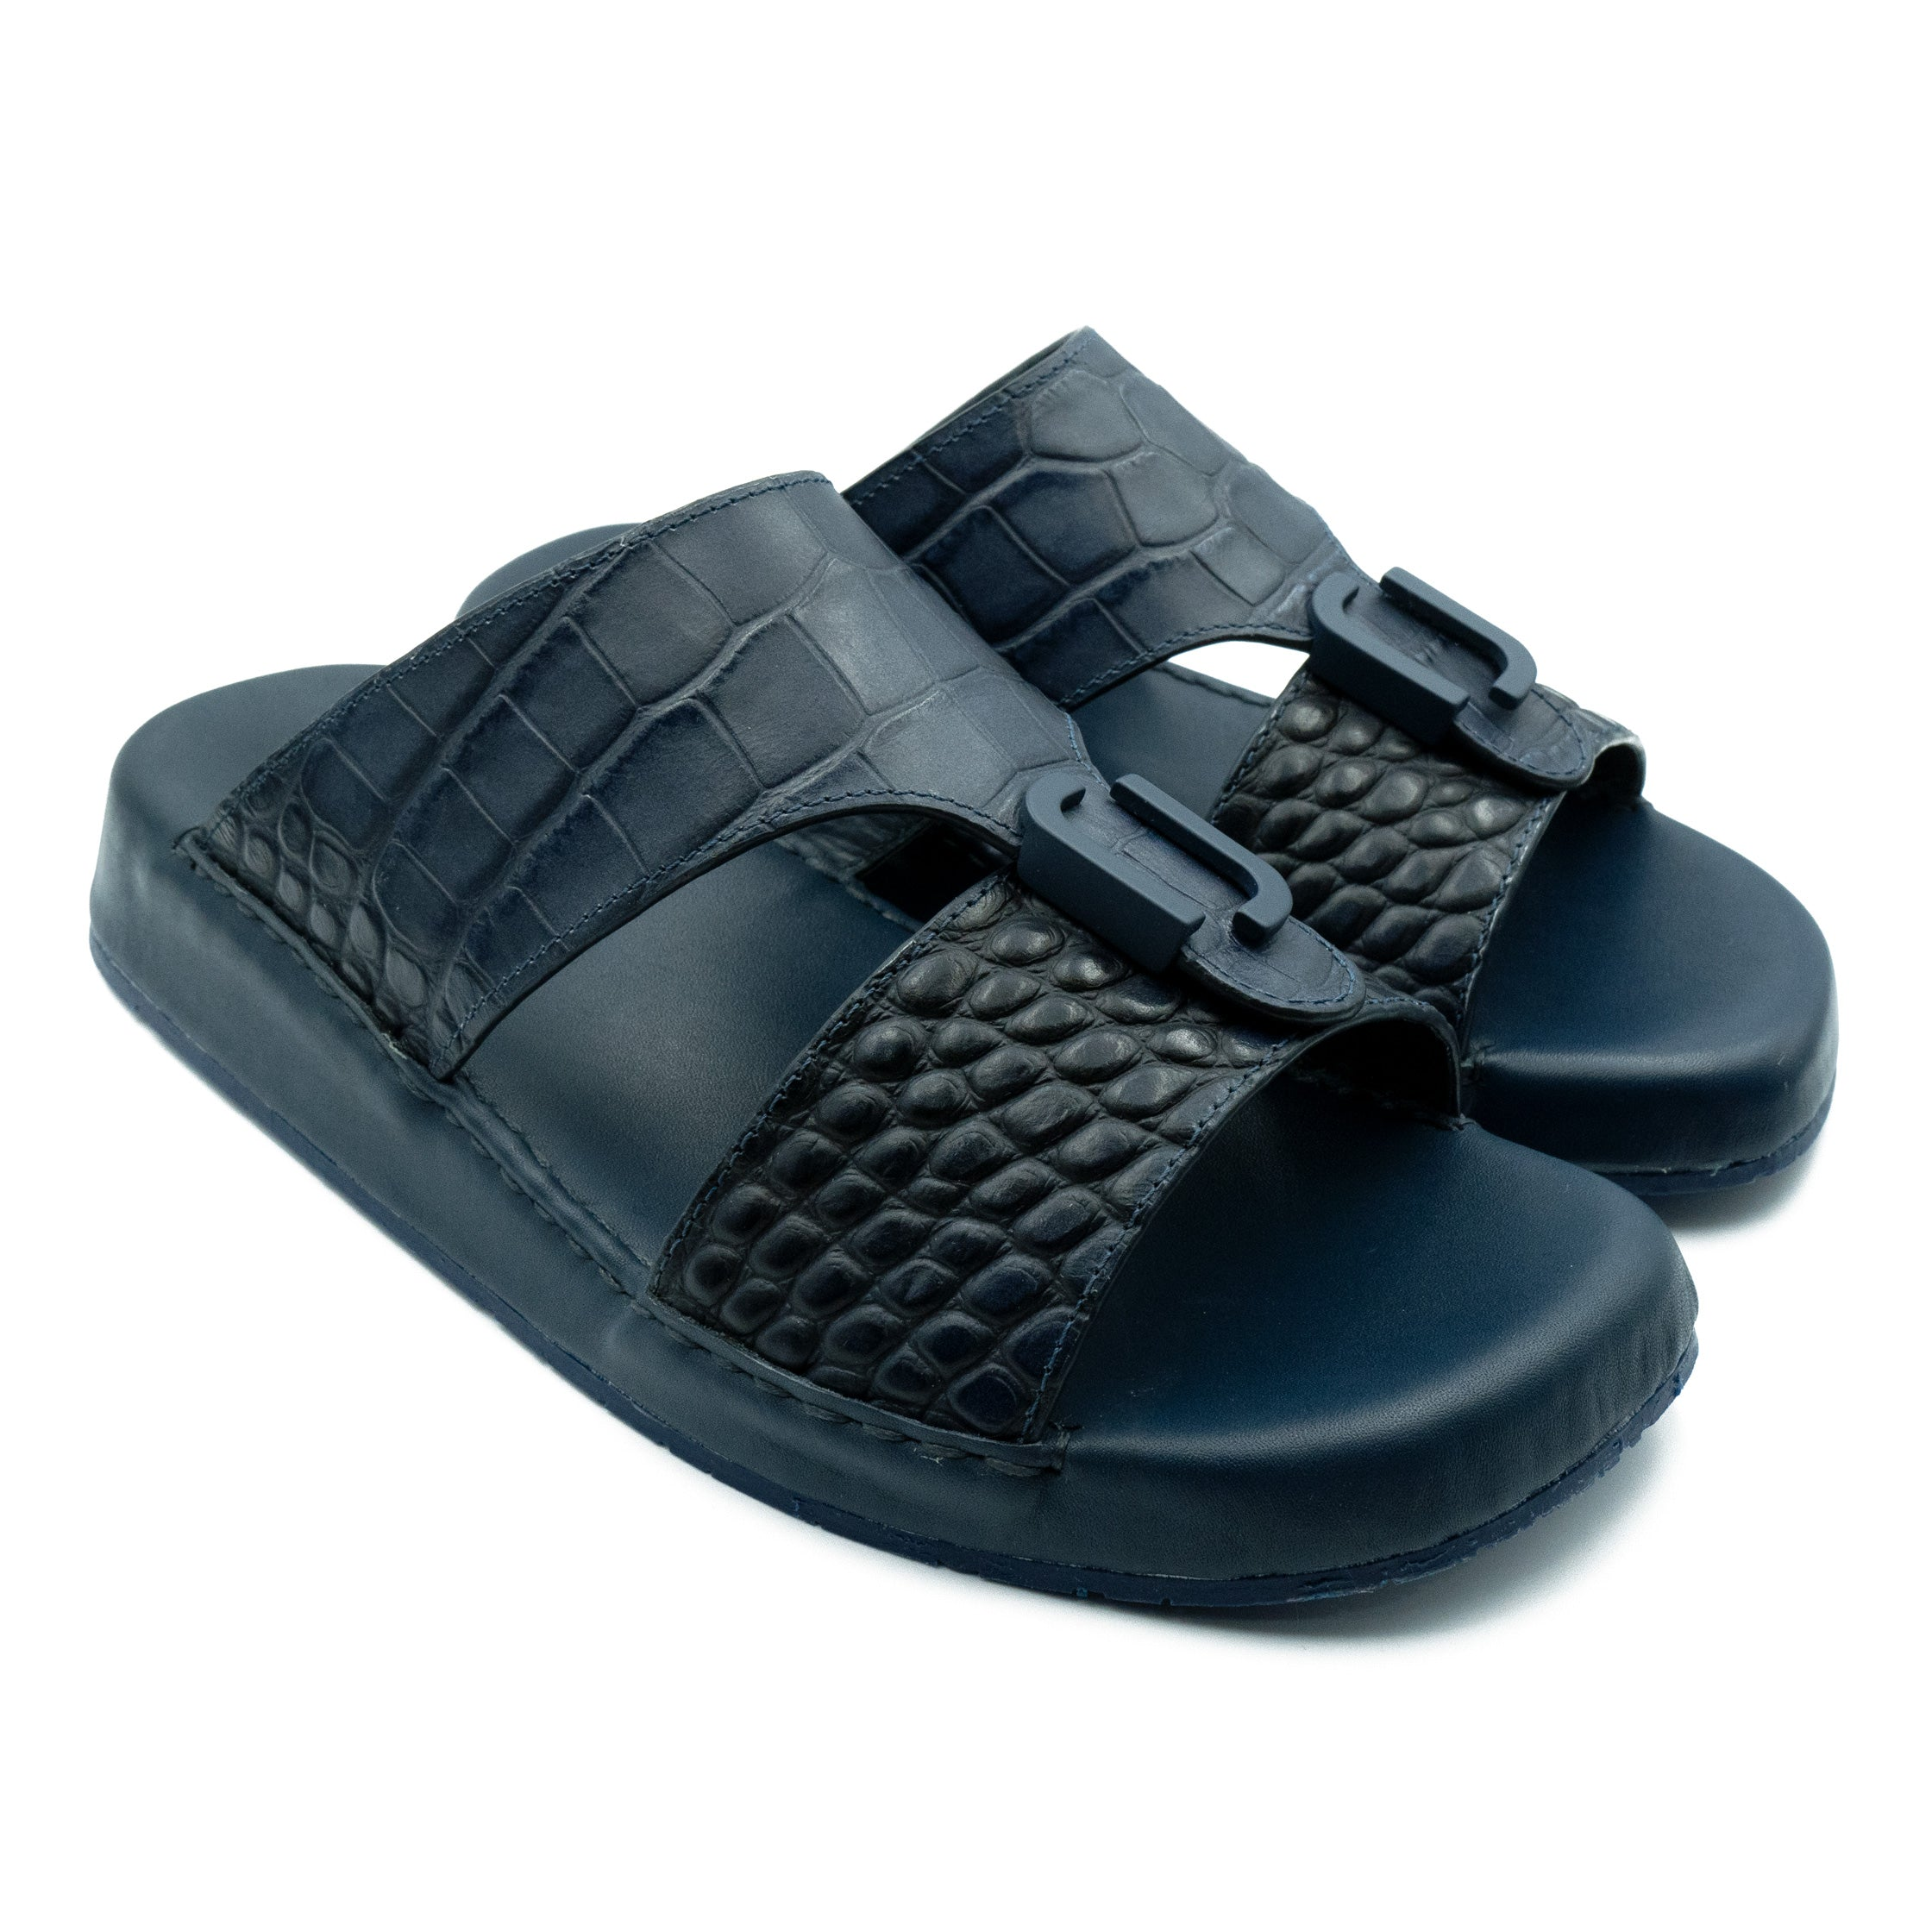 Navy Matt Croco (REC01) Arabic Sandals